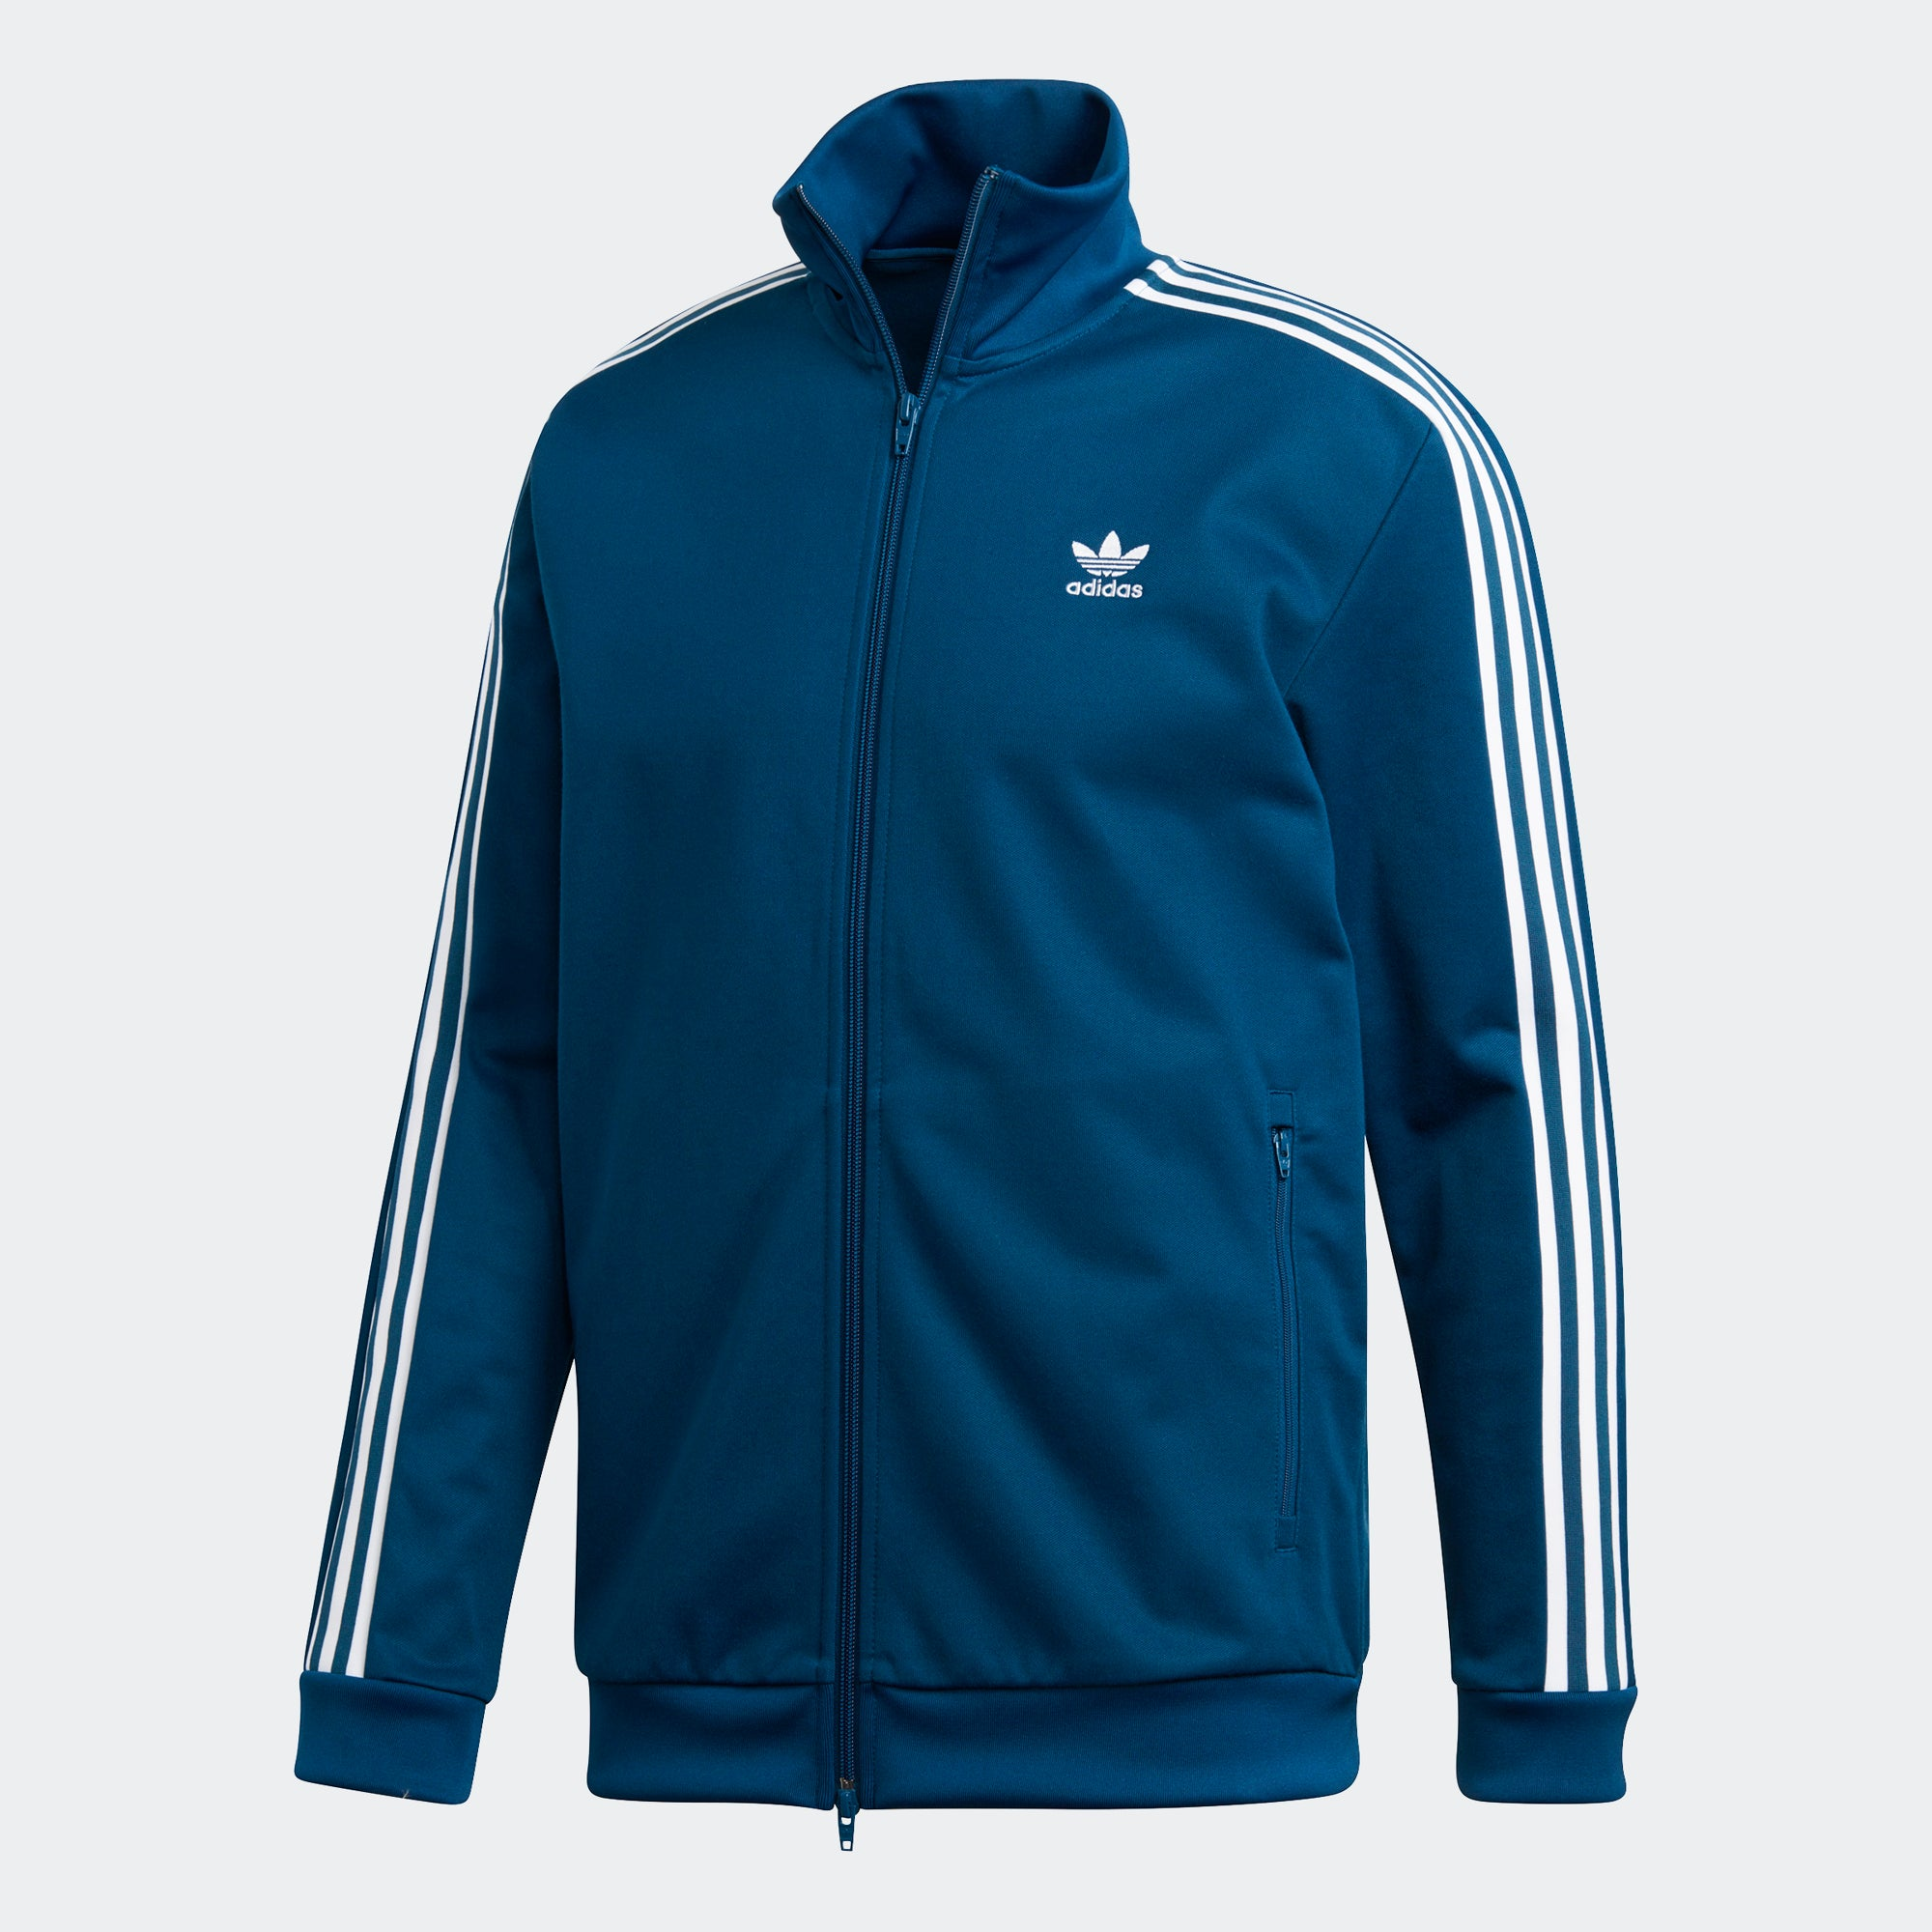 55e20dd8856d20 Men s adidas Originals BB Track Jacket Legend Marine